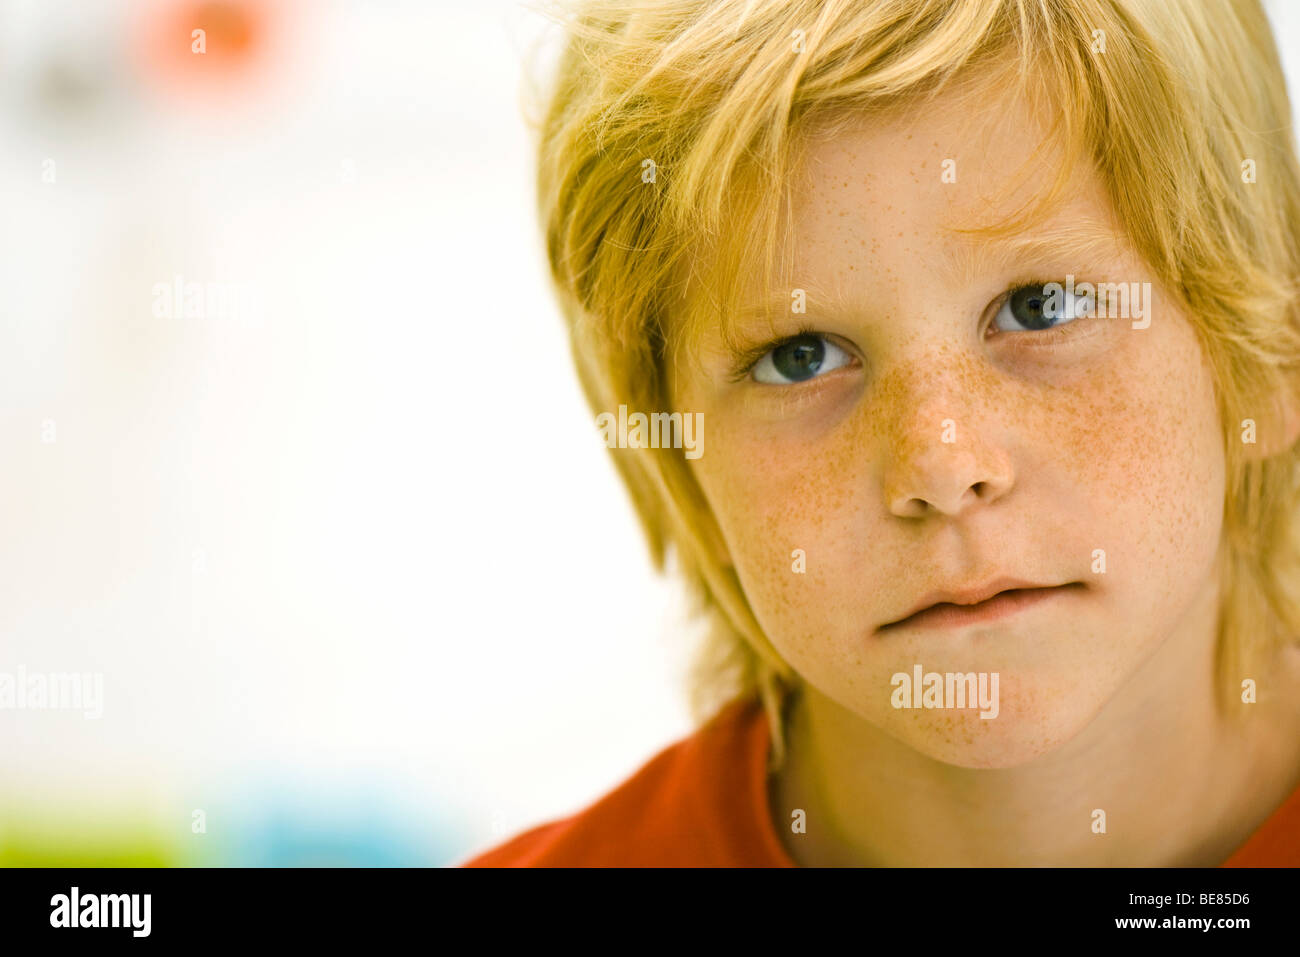 Boy with look of disappointment - Stock Image